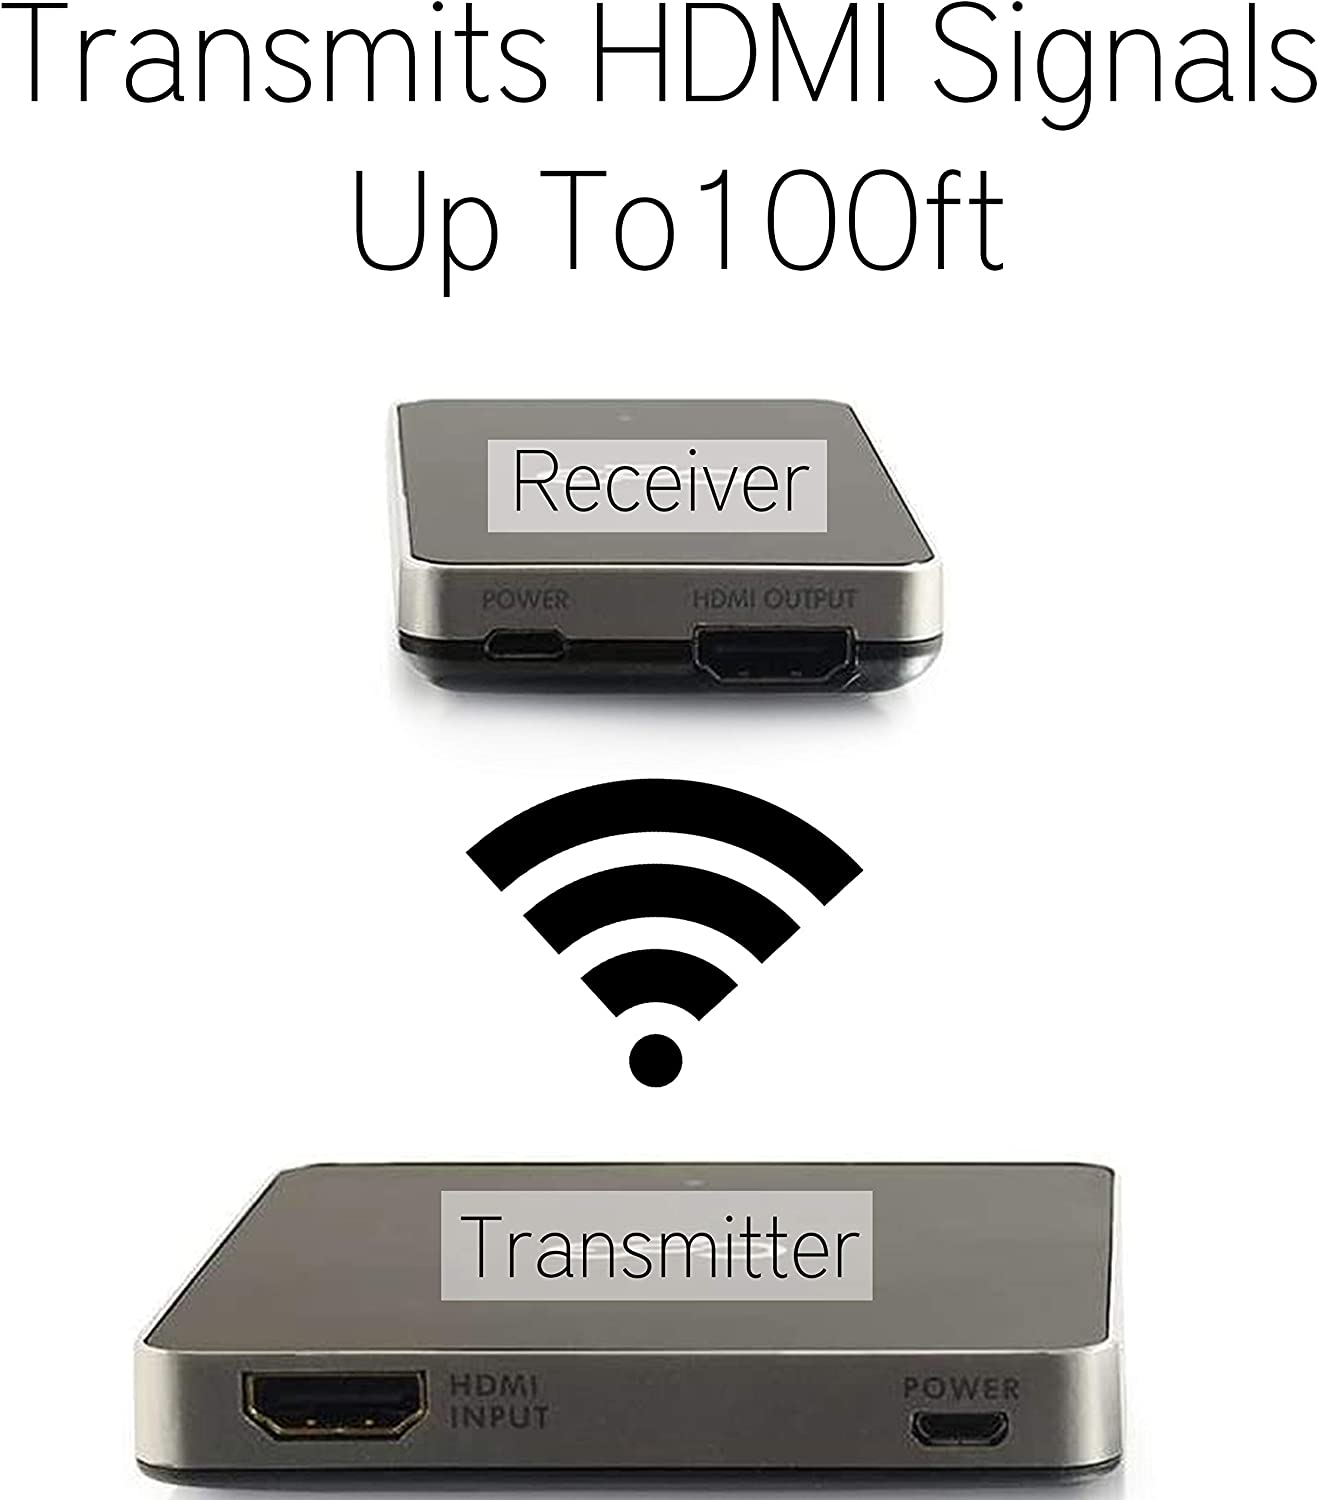 C2G Wireless HDMI Transmitter /& Receiver Kit Quick Setup With No Software Required Wirelessly Transmit HDMI Signals Up To 100ft Between Devices Works With Both Audio /& Video